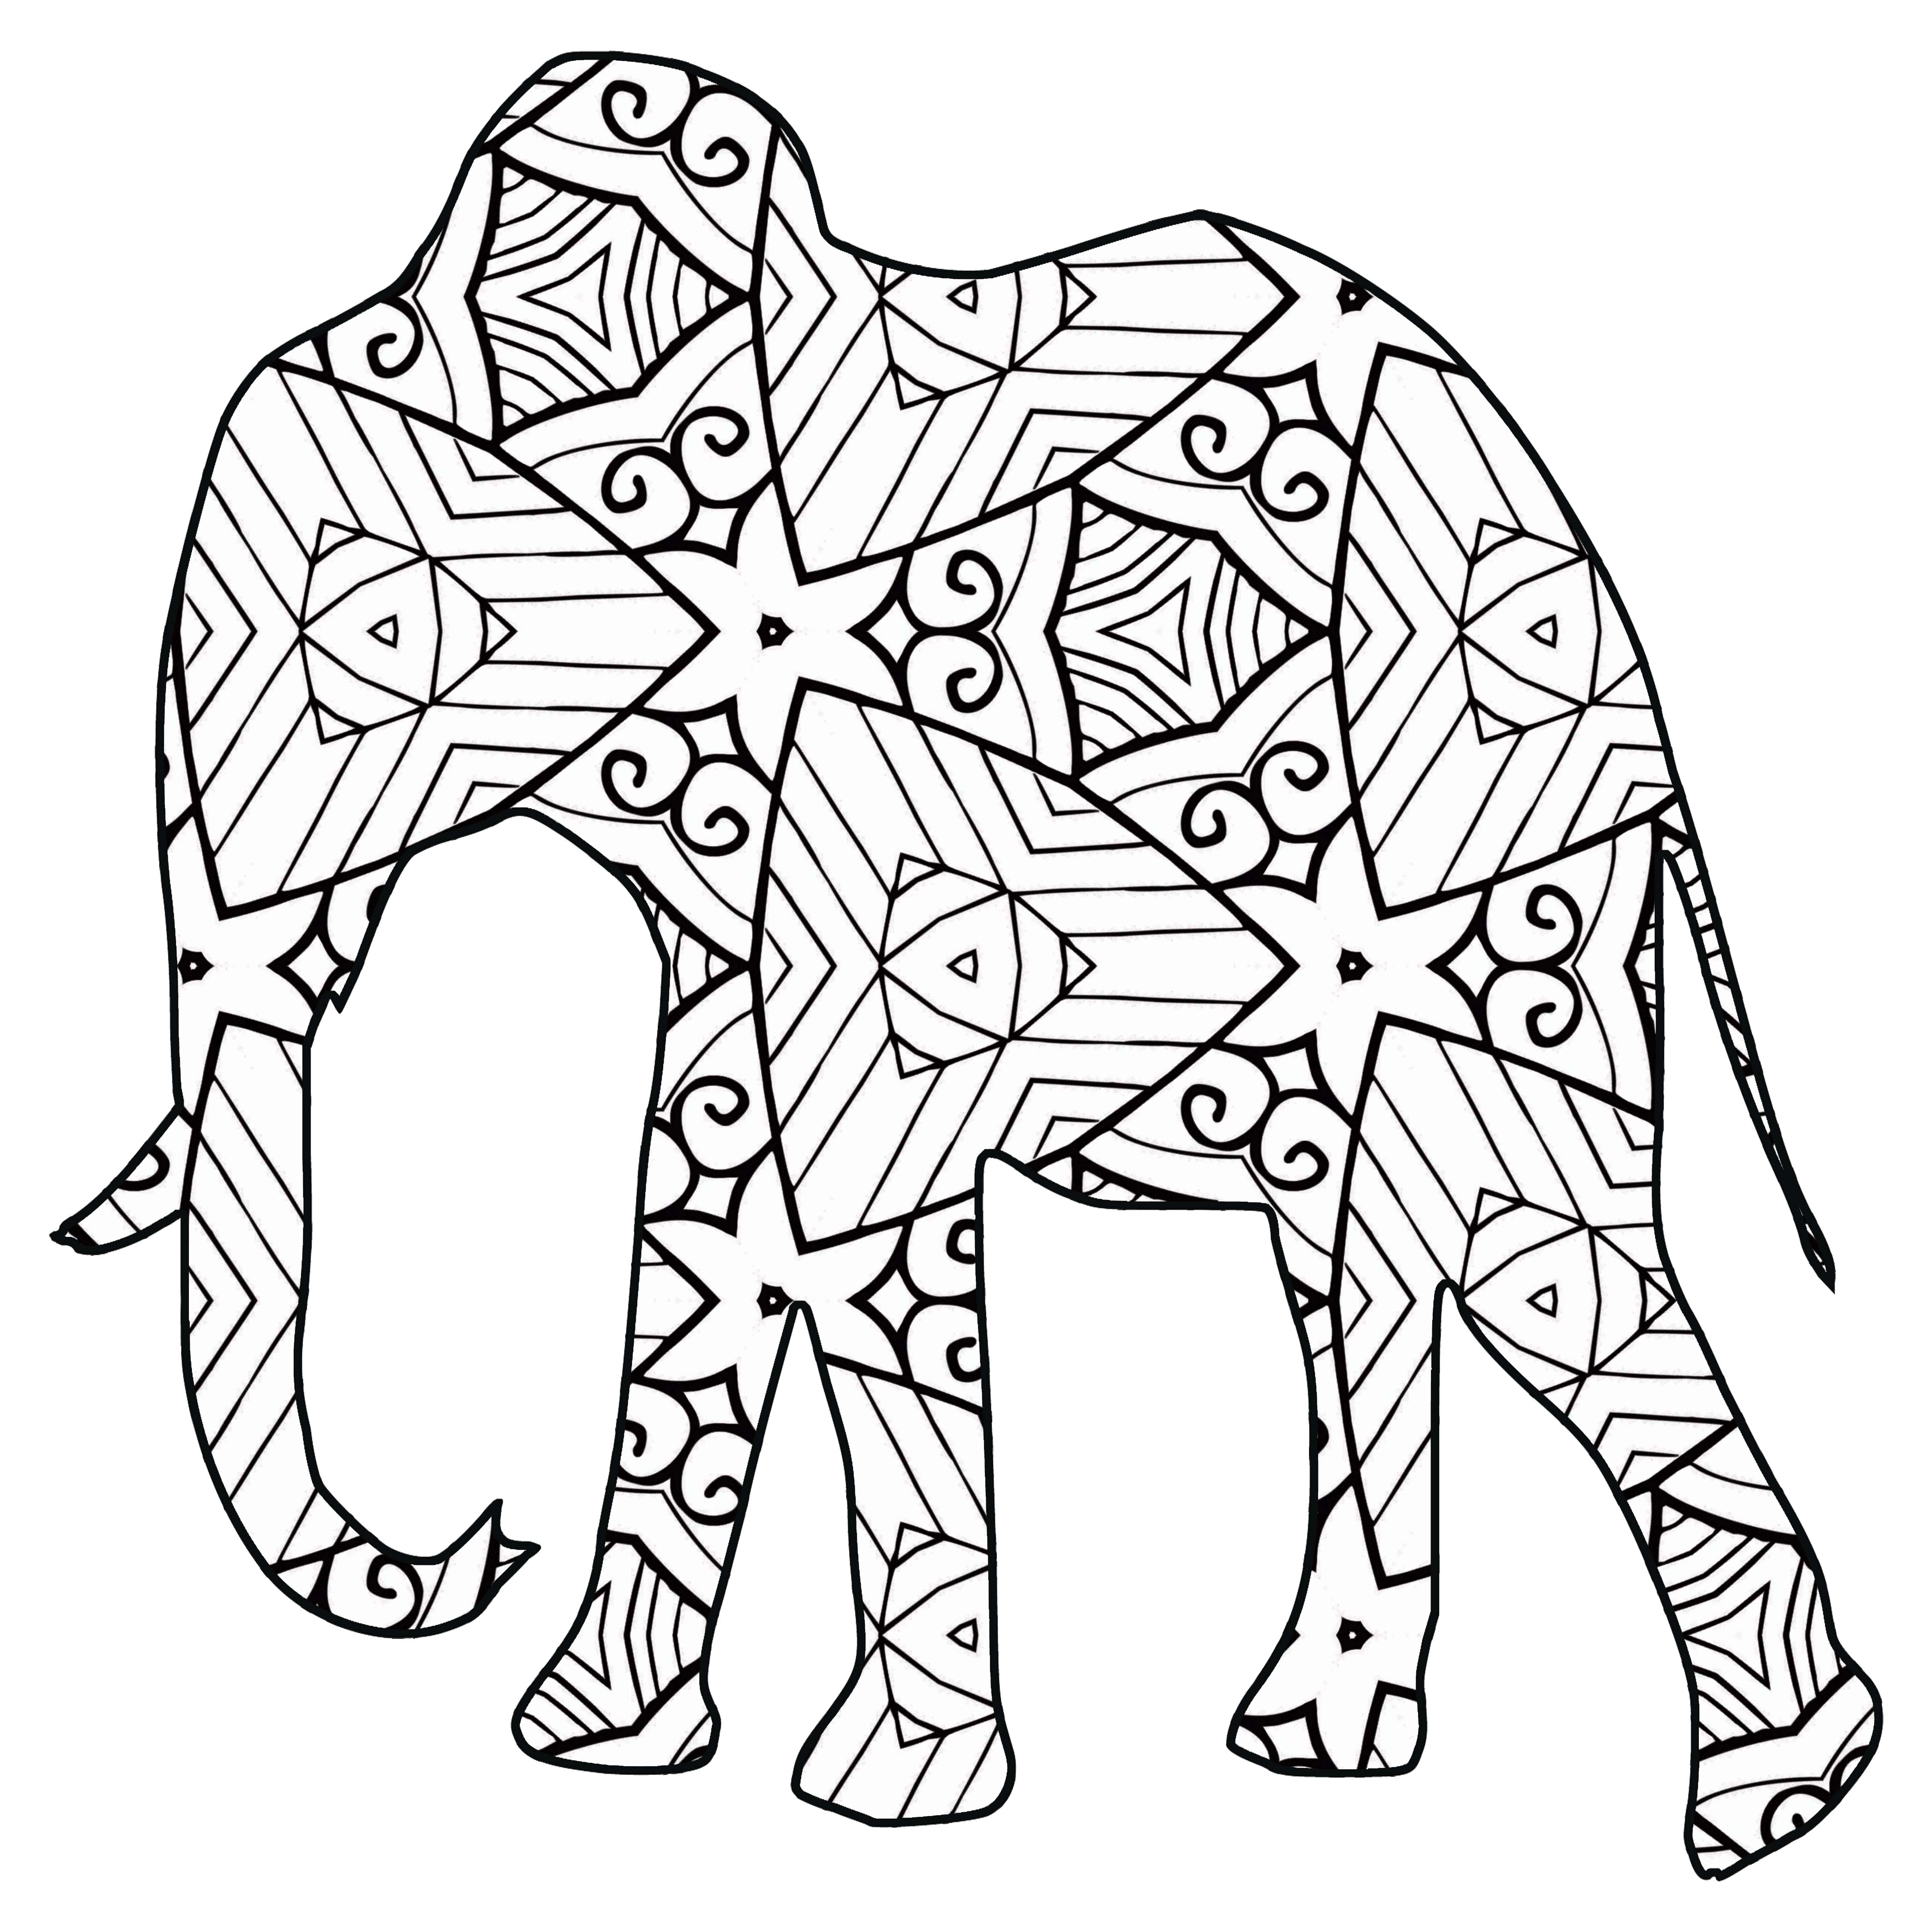 30 Free Printable Geometric Animal Coloring Pages   The ...   free printable coloring pages safari animals